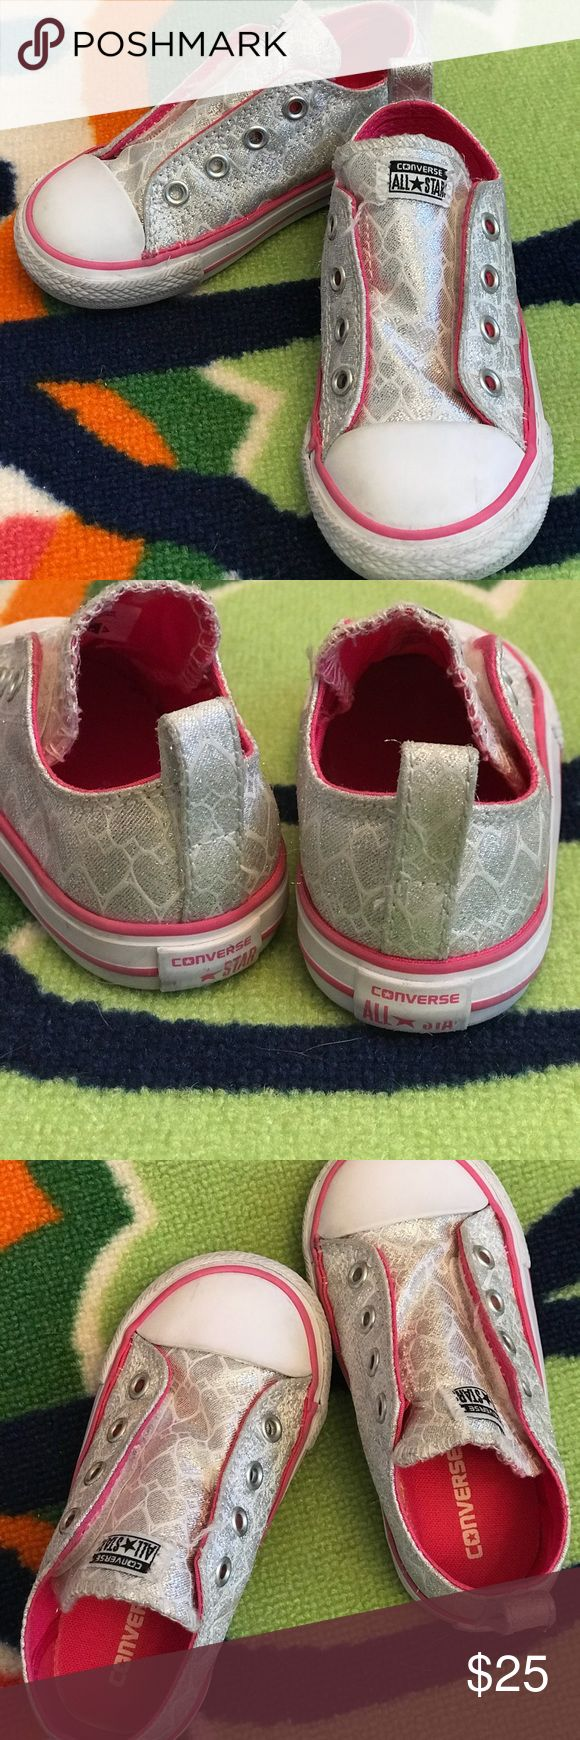 Converse All-Star Girls Tennis shoes- Size 7 Shiny Silver material with heart pattern in white  VERY gently worn- no wear on soles (inside or out) Only sign of wear is on front bottom/ back bottom (see pic) Velcro/ Elastic open (no laces)  As with all my listings, you're assured items come from a smoke-free home and are sanitized to the nest of my ability.  🤗All reasonable offers welcomed!🤗 Converse Shoes Sneakers